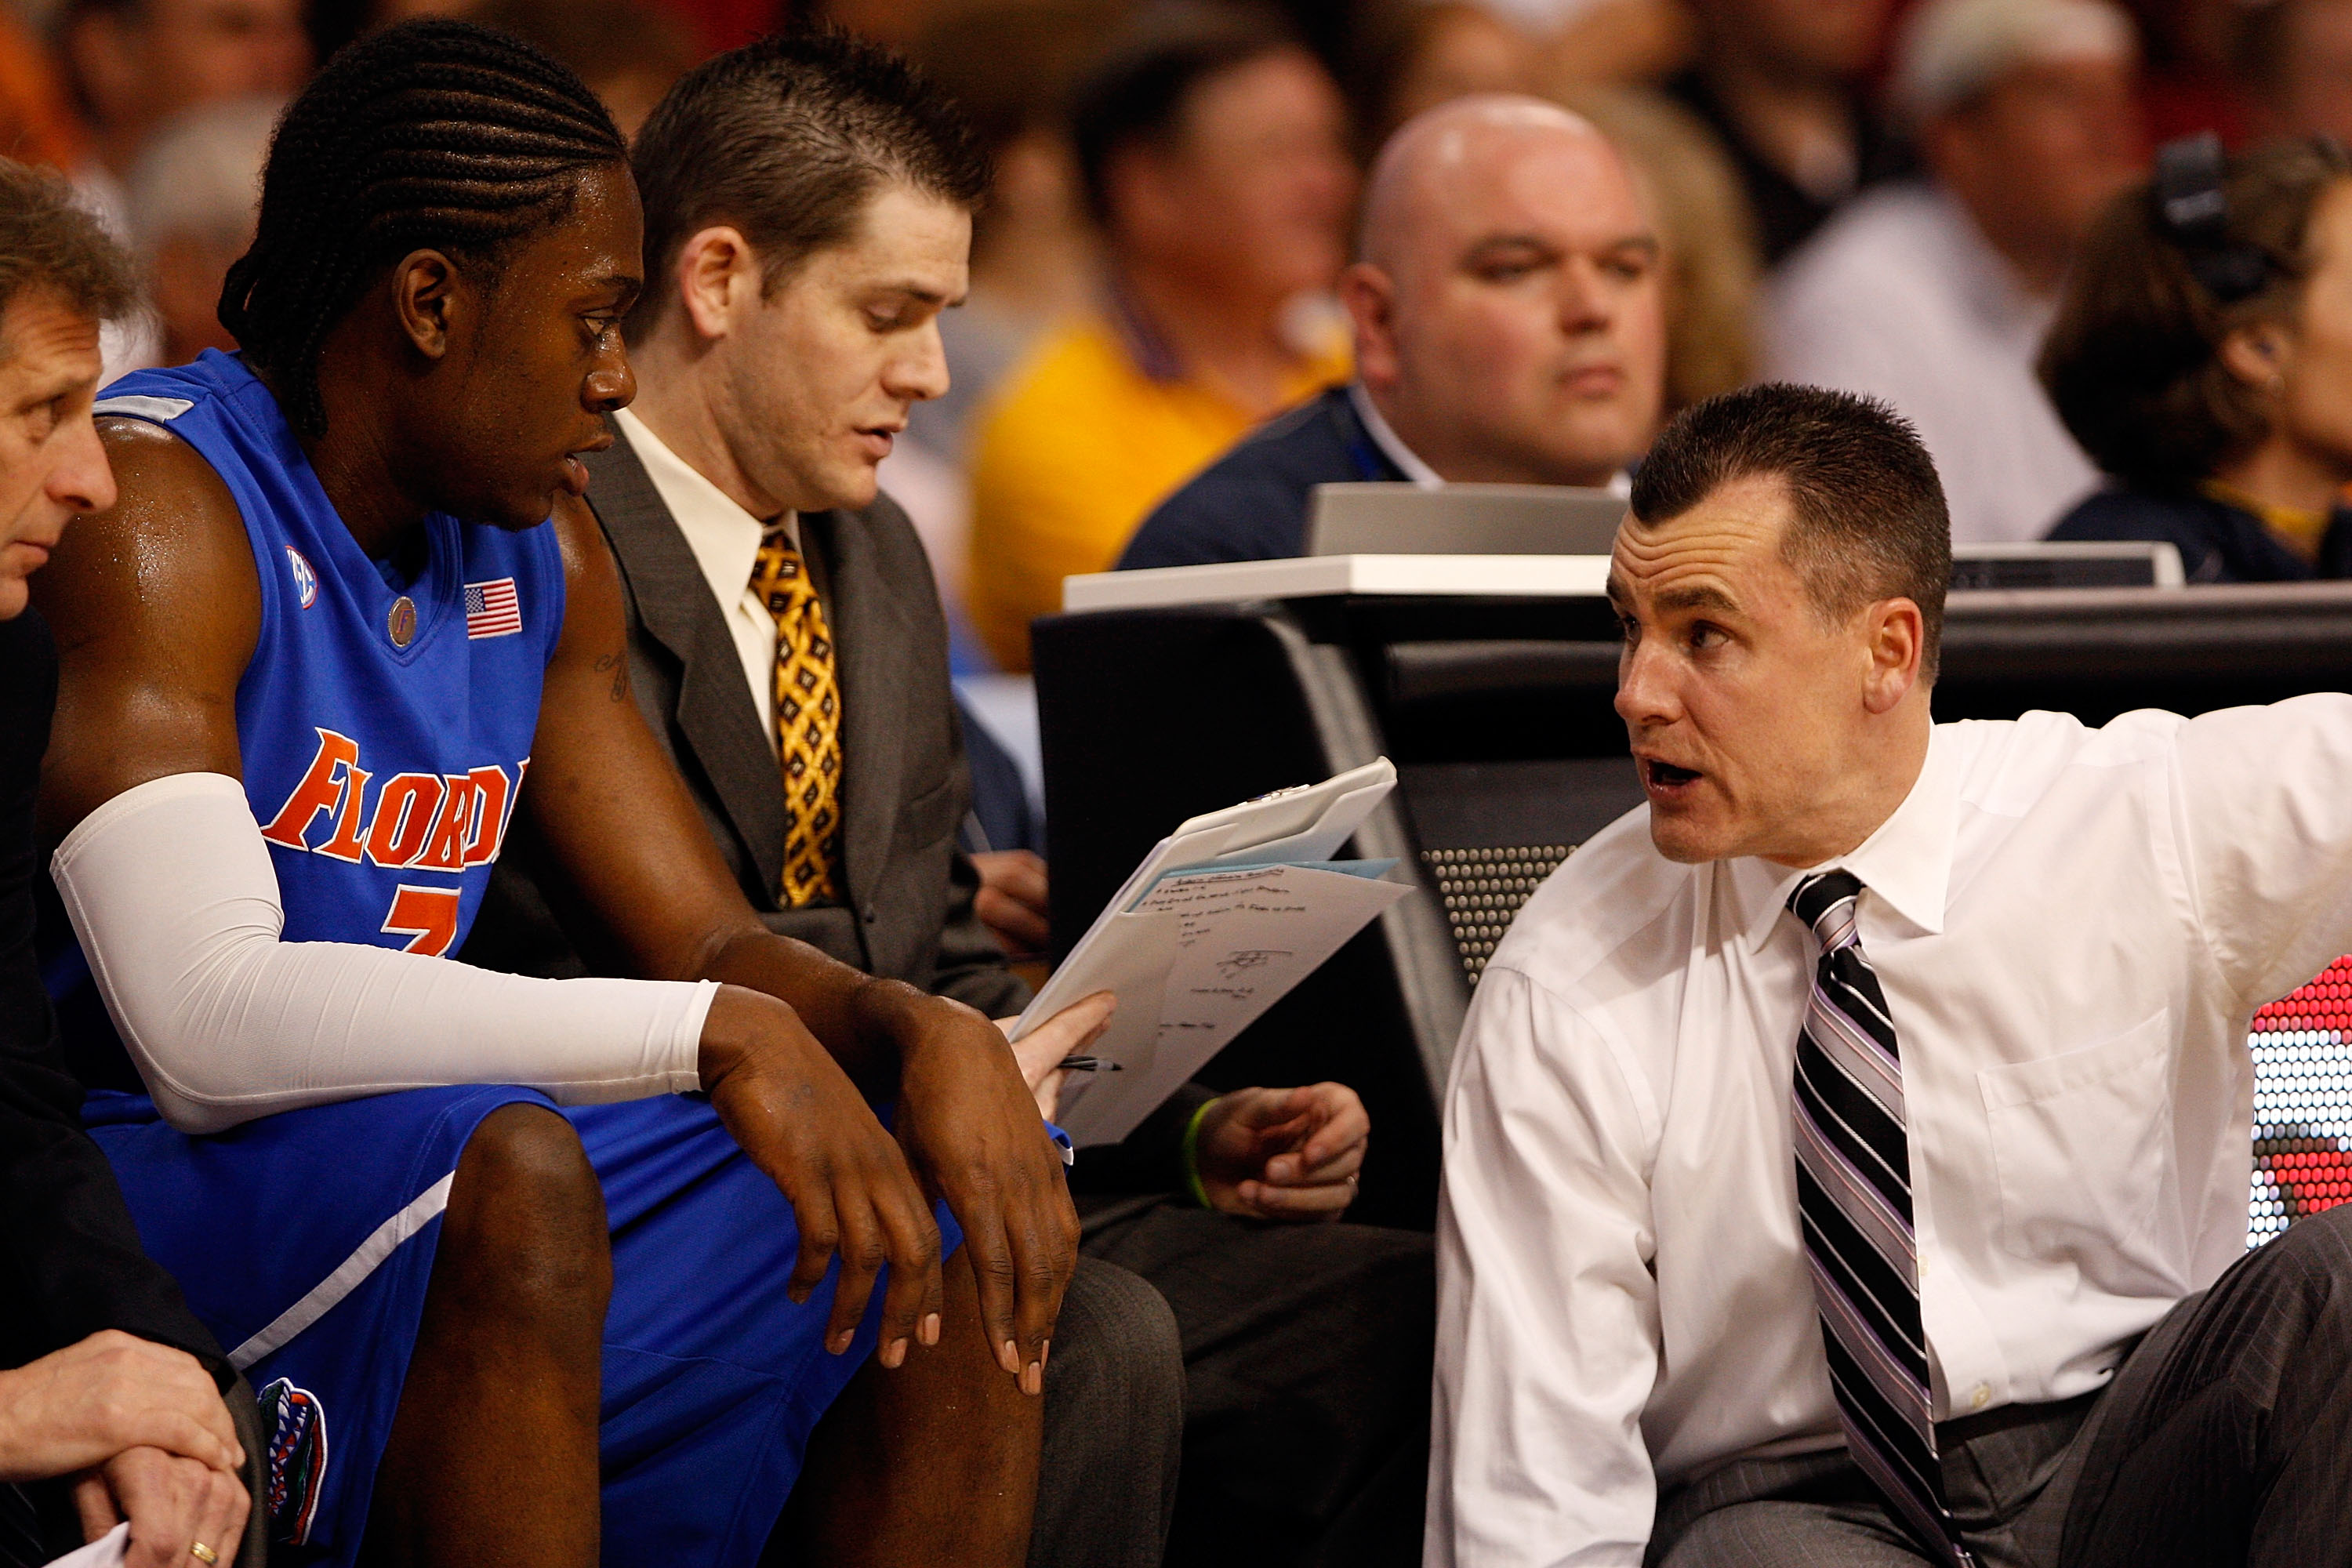 TAMPA, FL - MARCH 13:  Ray Shipman #3 talks with head coach Billy Donovan of the Florida Gators during the game against the Auburn Tigers during the quaterfinal round of the SEC Men's Basketball Tournament on March 13, 2009 at The St. Pete Times Forum in